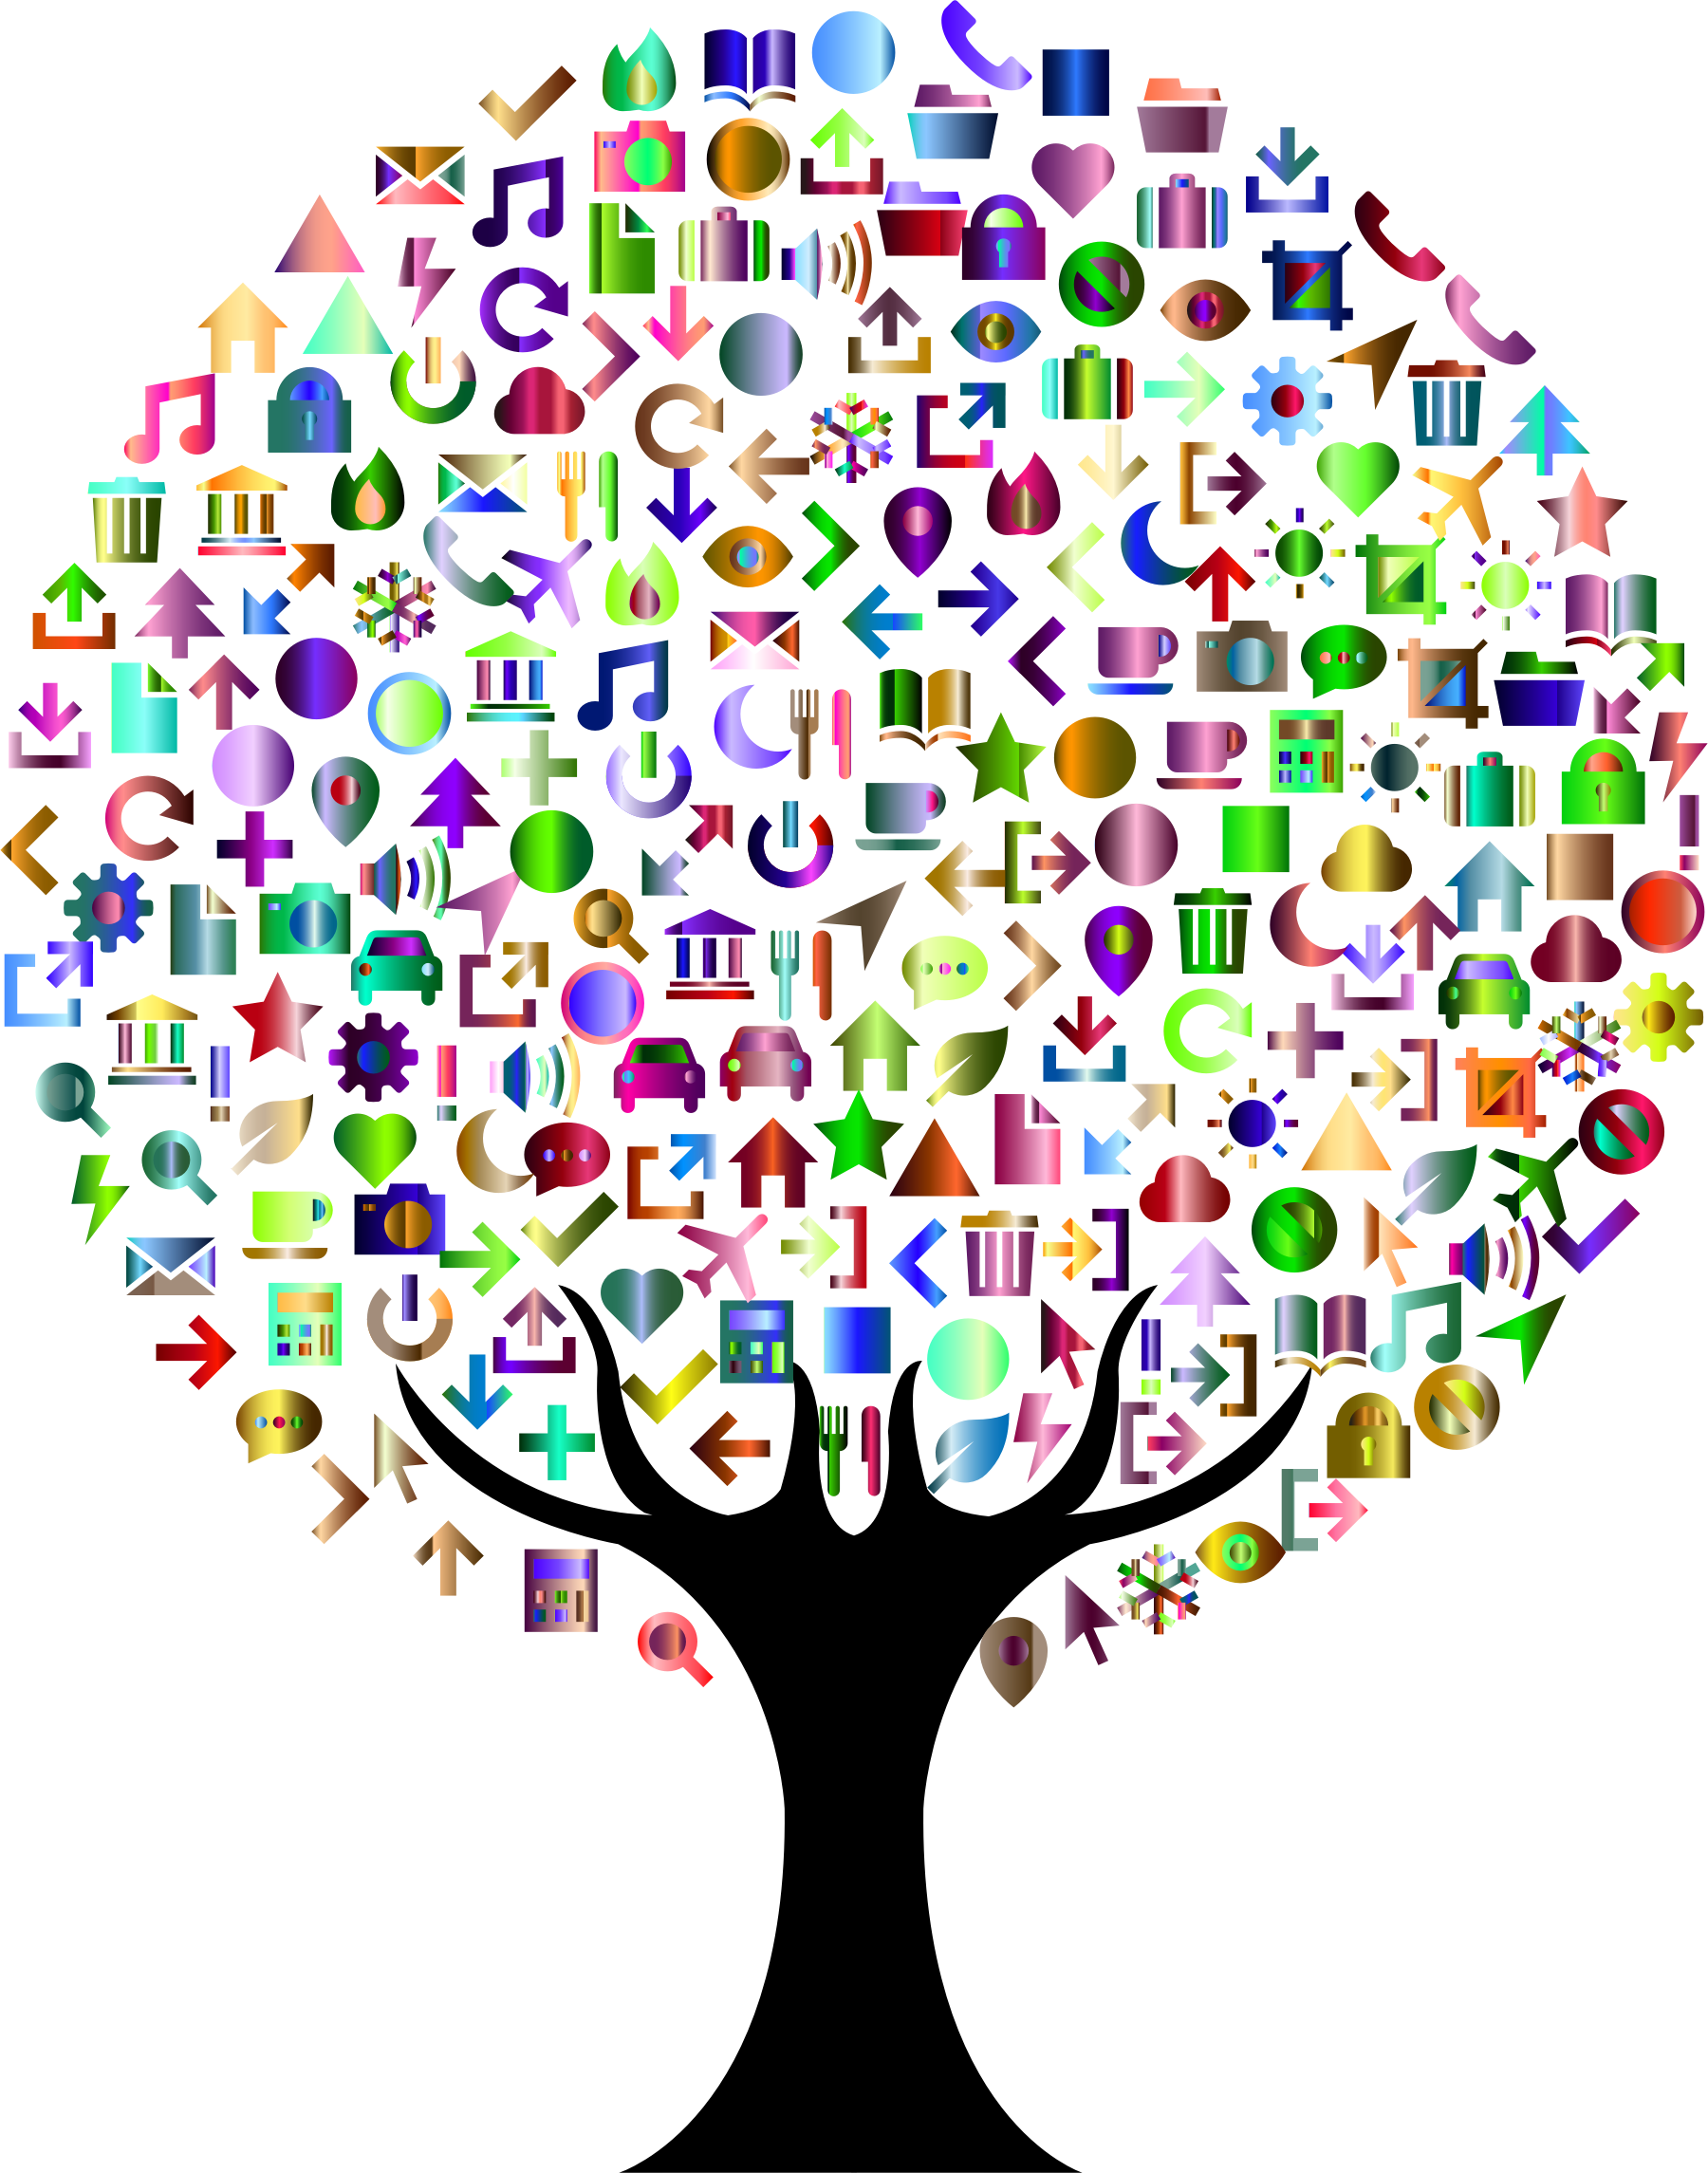 Abstract Icons Tree Prismatic 3 by GDJ